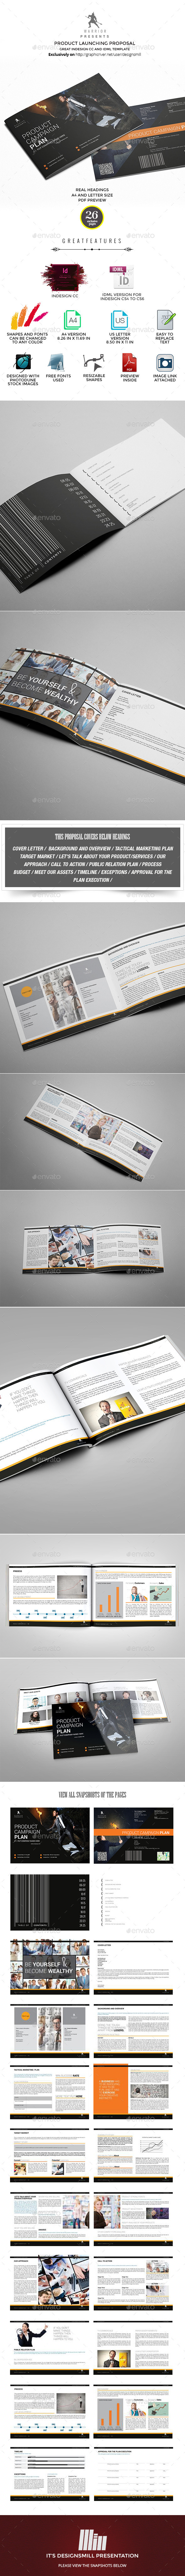 GraphicRiver Product Campaign Proposal 9996488